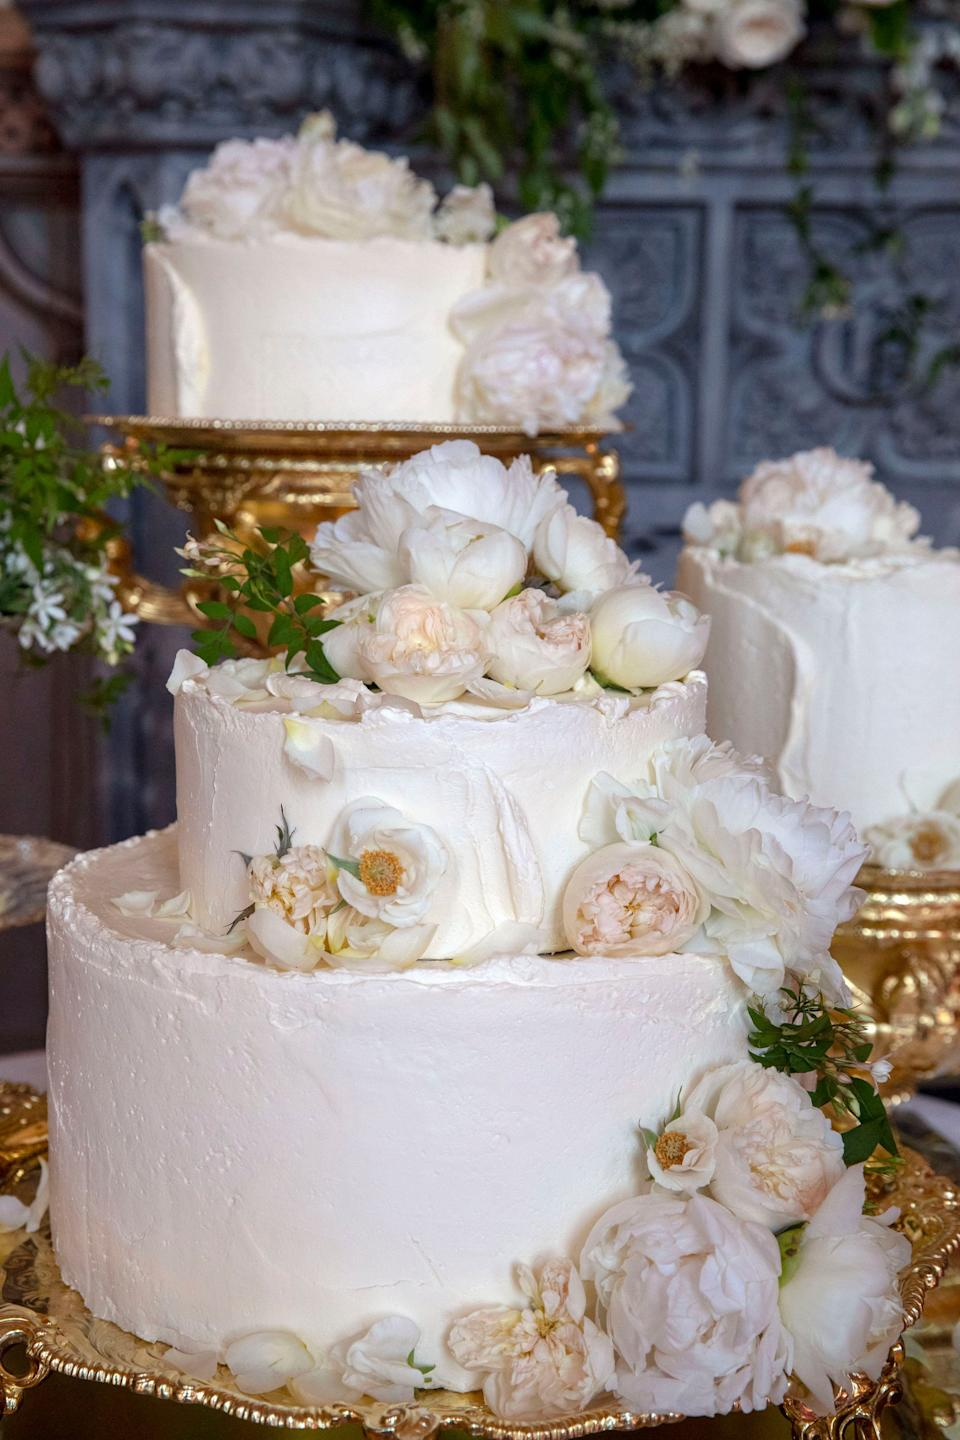 The wedding cake by Claire Ptak of London-based bakery Violet Cakes.